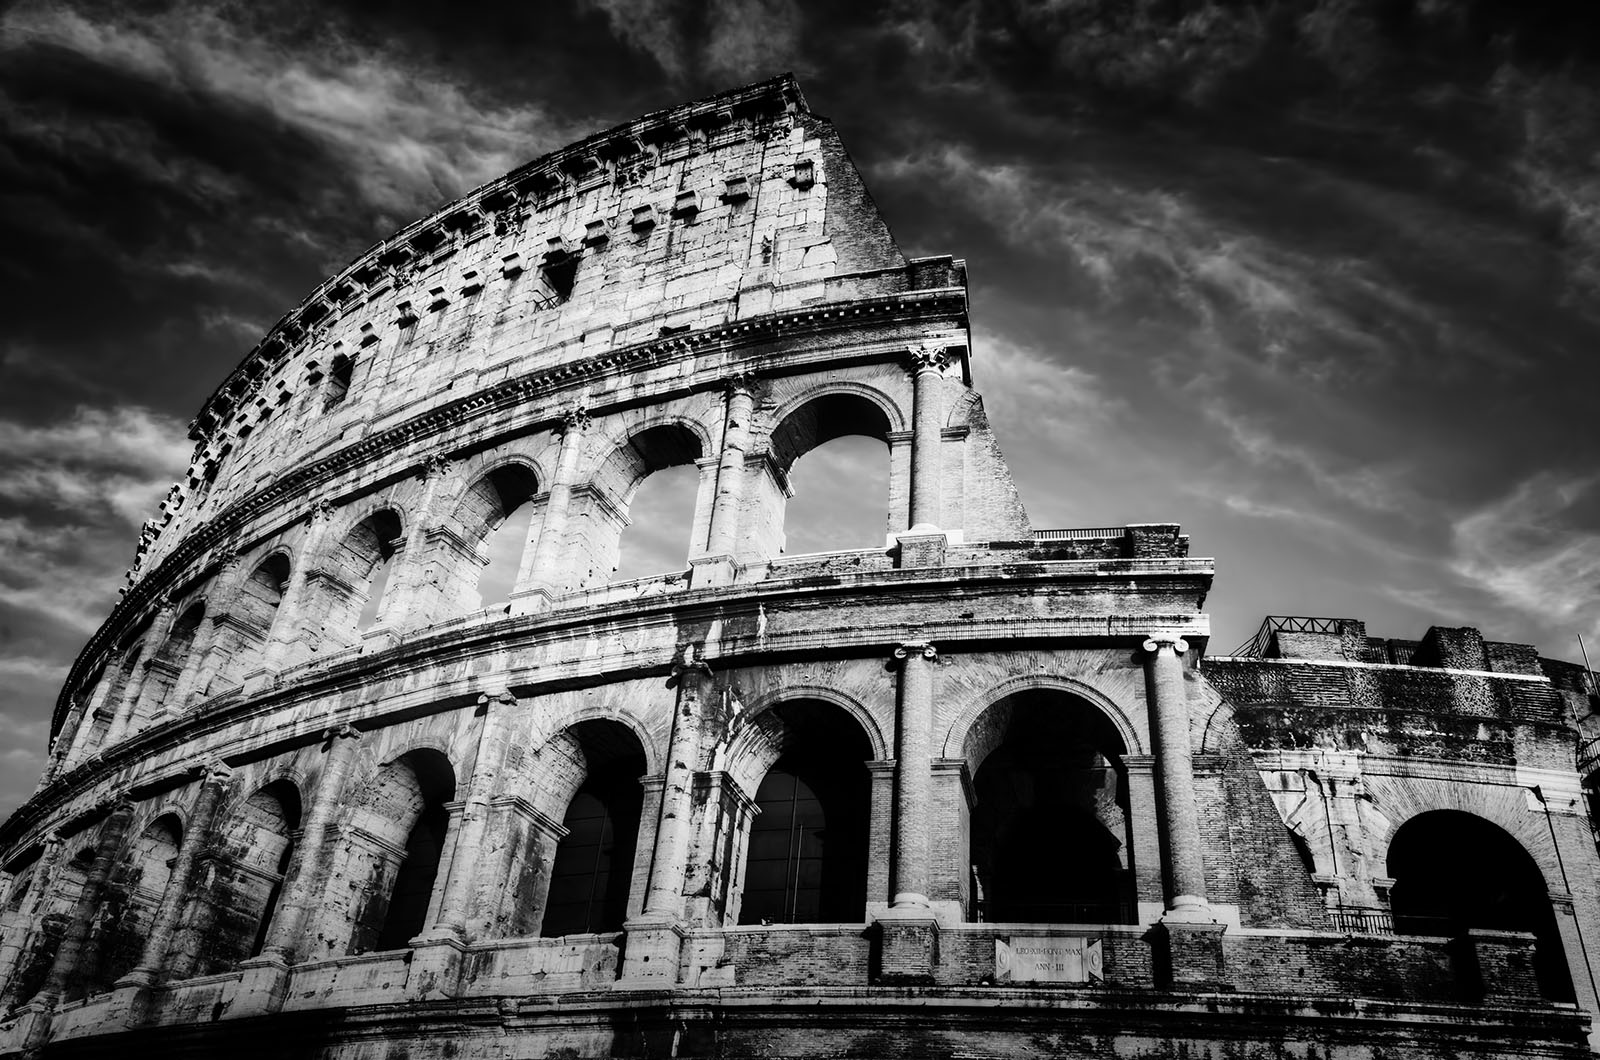 The best time of day to visit the Colosseum